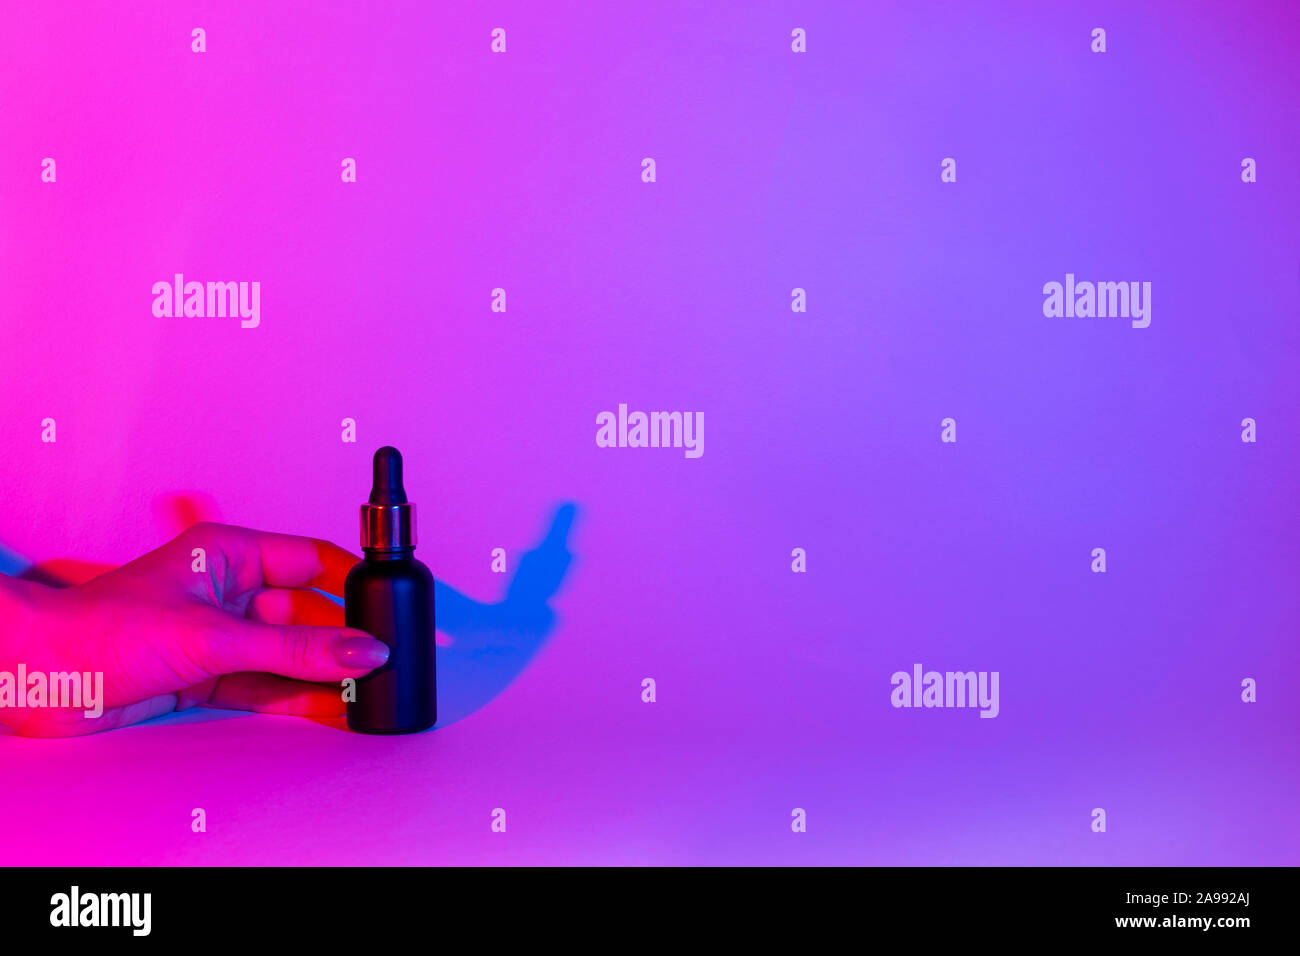 Female hand holds a bottle of black matte color on a neon trend background. Cosmetics concept. glass bottle mockup. Stock Photo